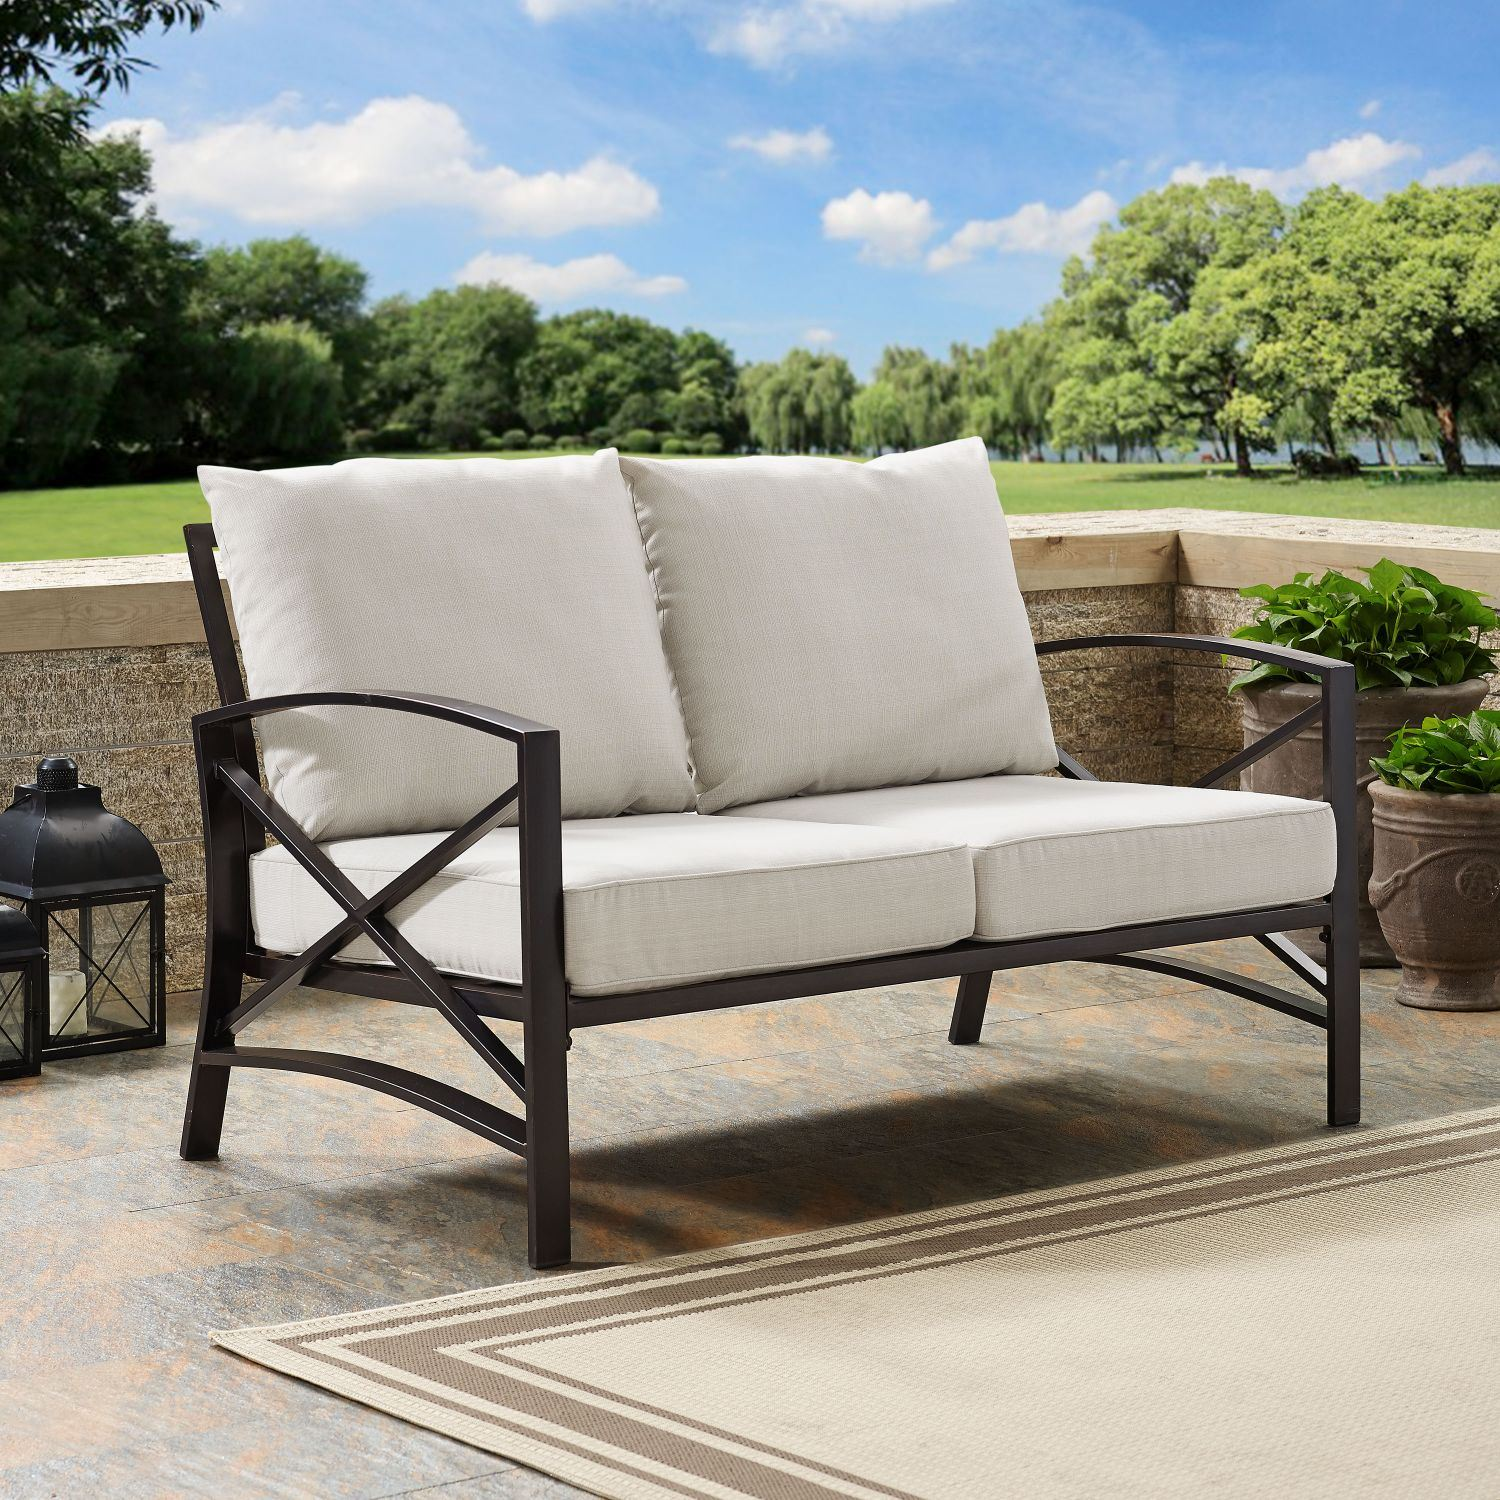 Picture of KAPLAN LOVESEAT IN OILED BRONZE WITH OATMEAL UNIVE